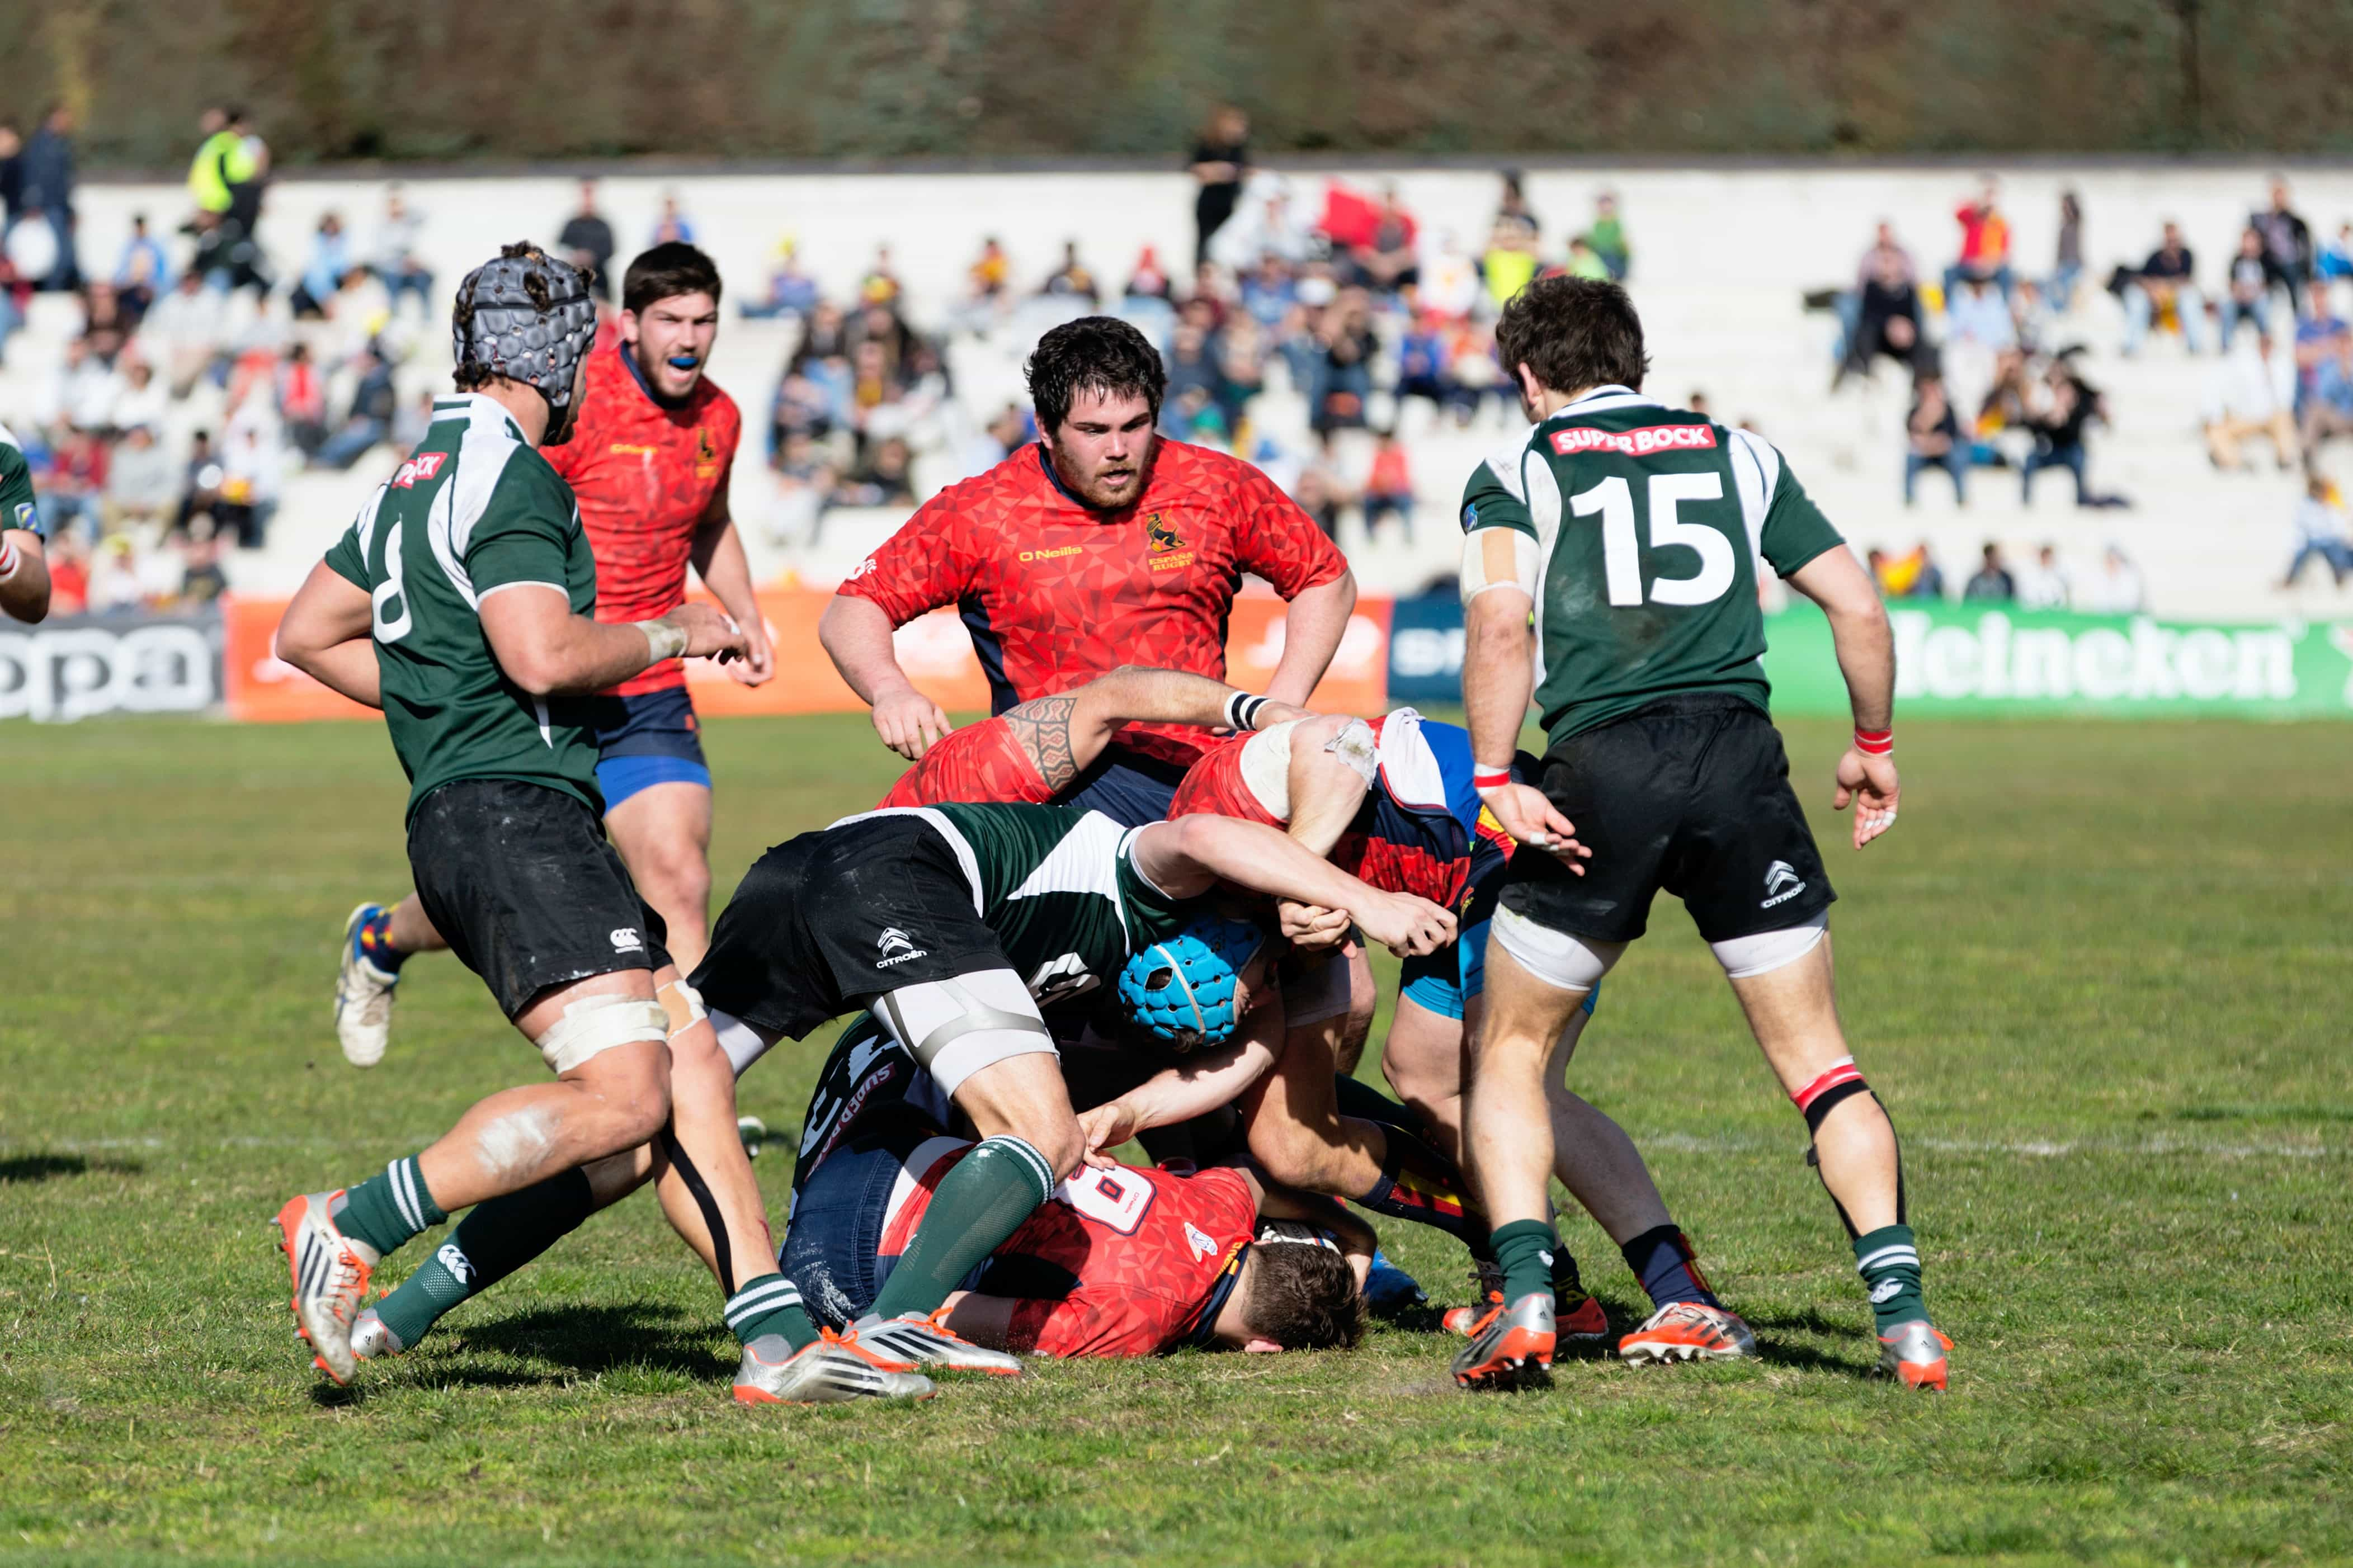 Rugby Crowd